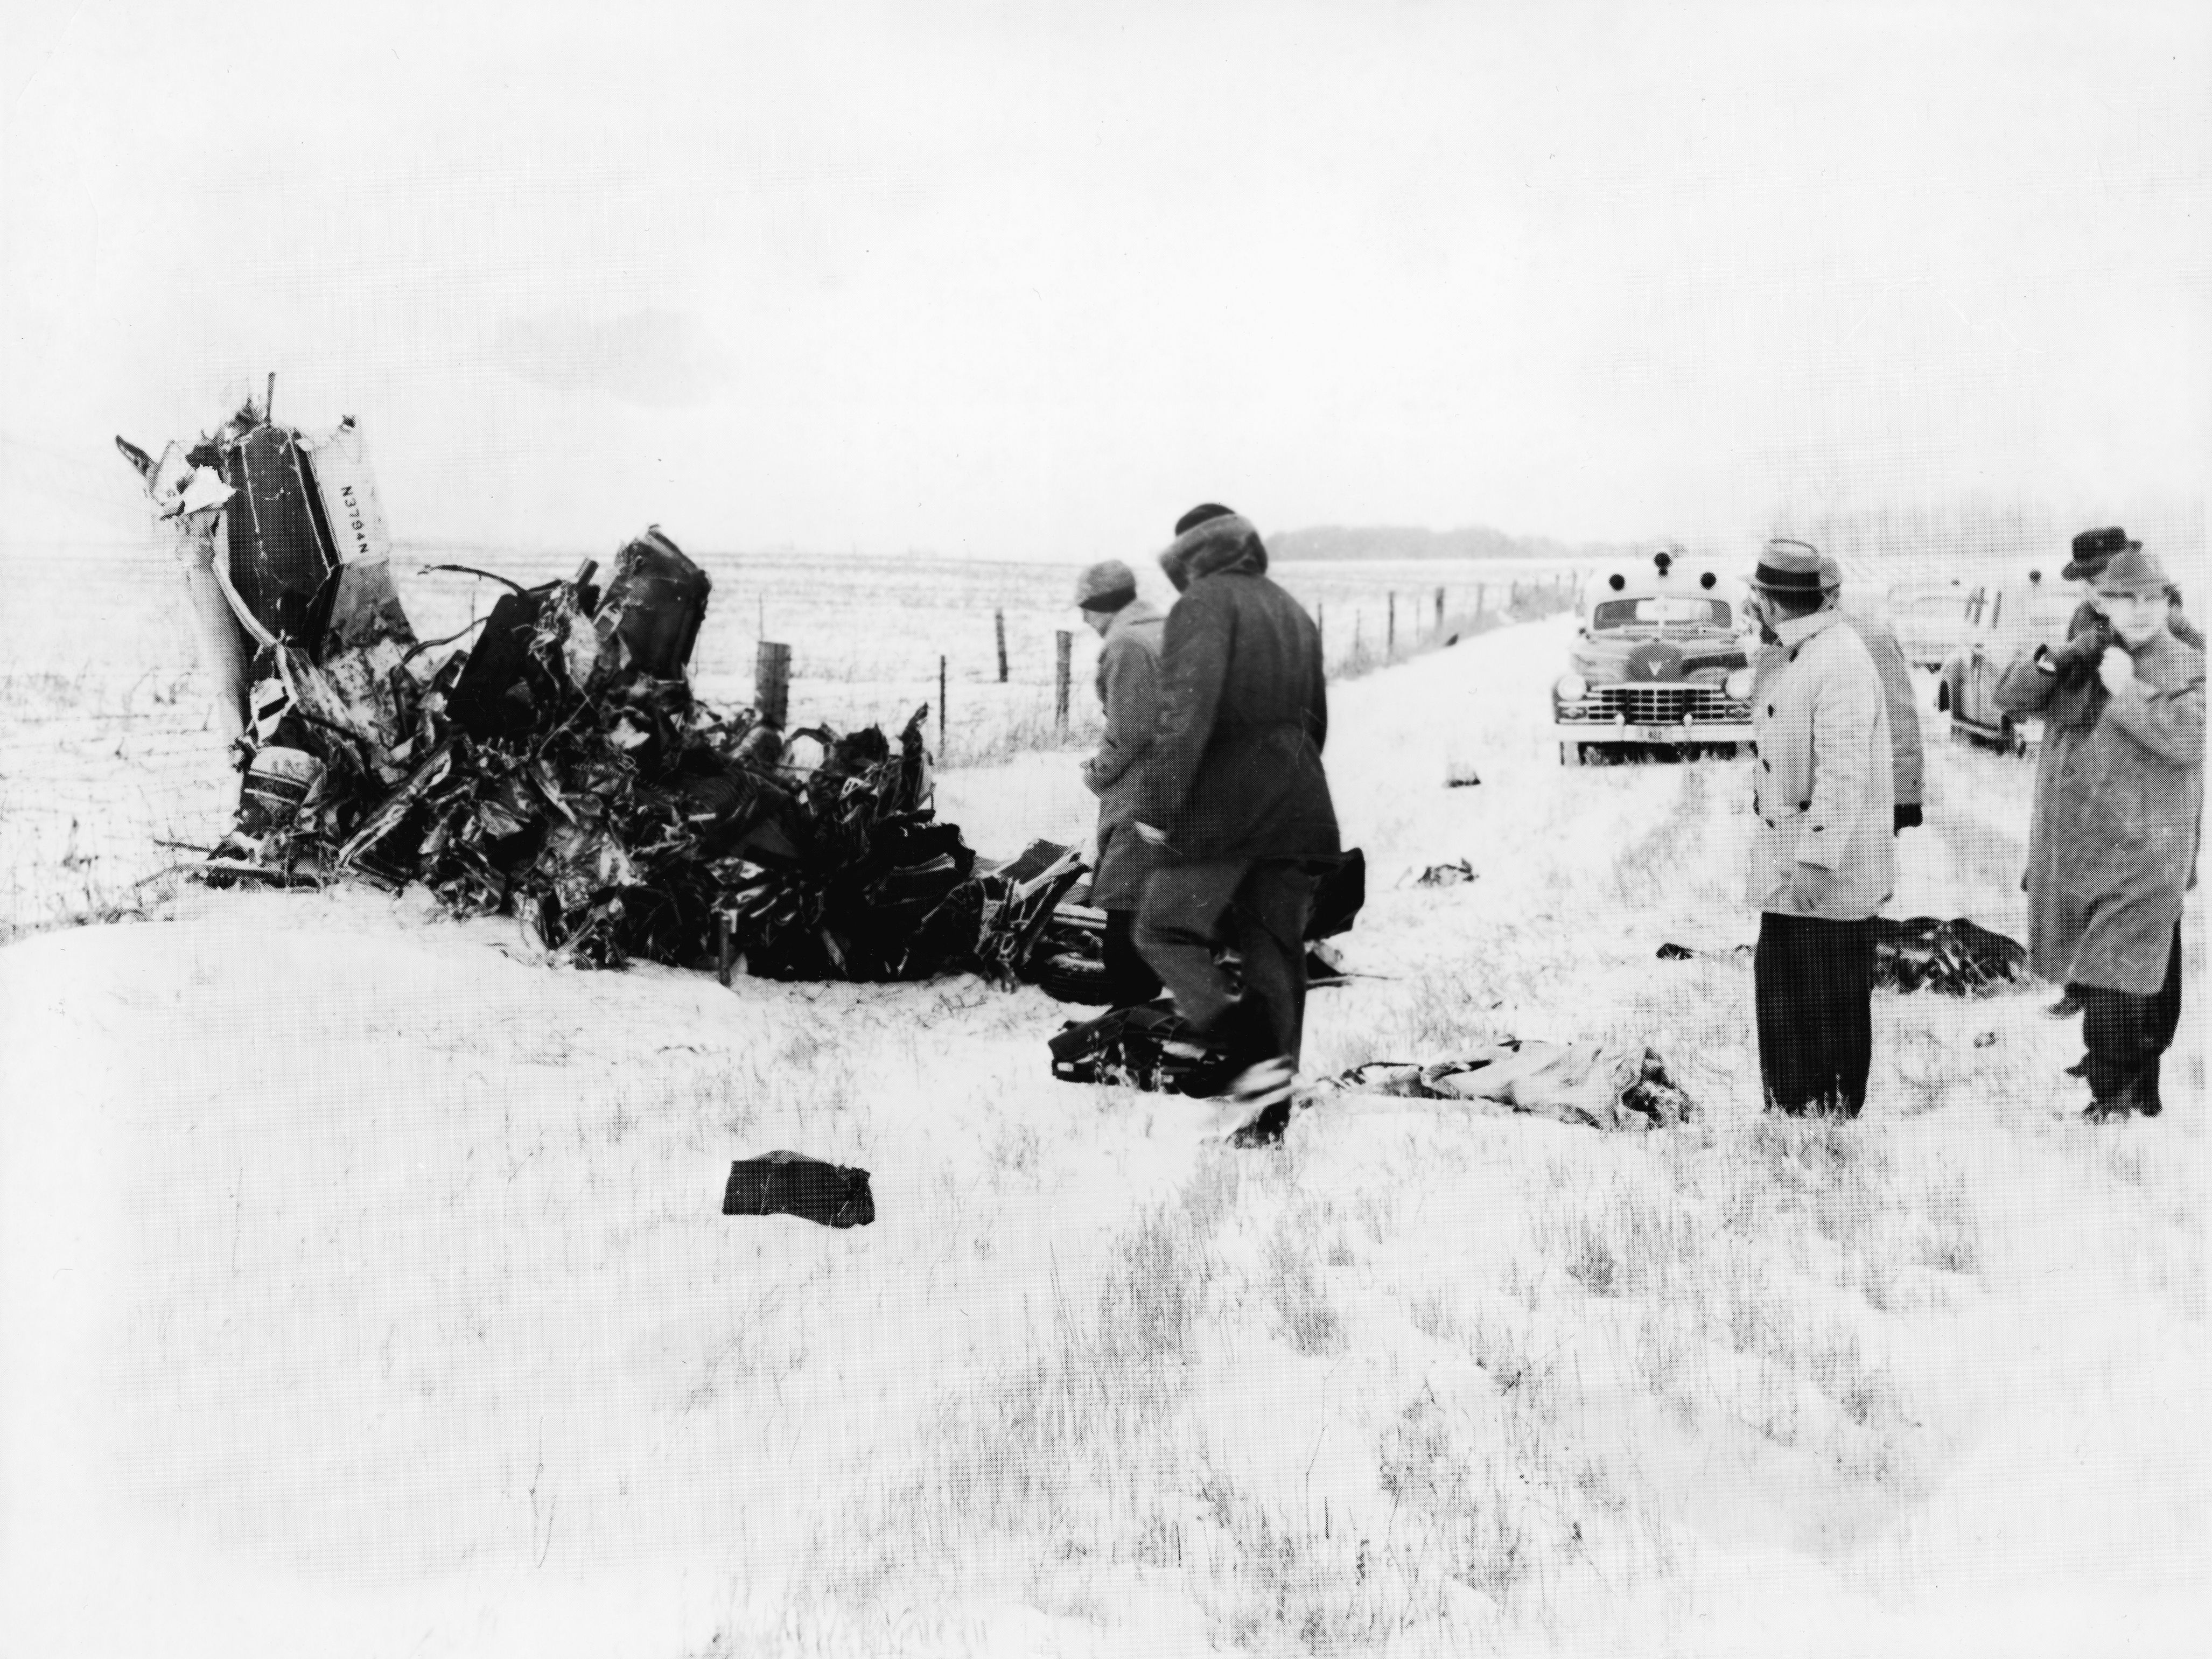 Details on the Buddy Holly Plane Crash of 1959